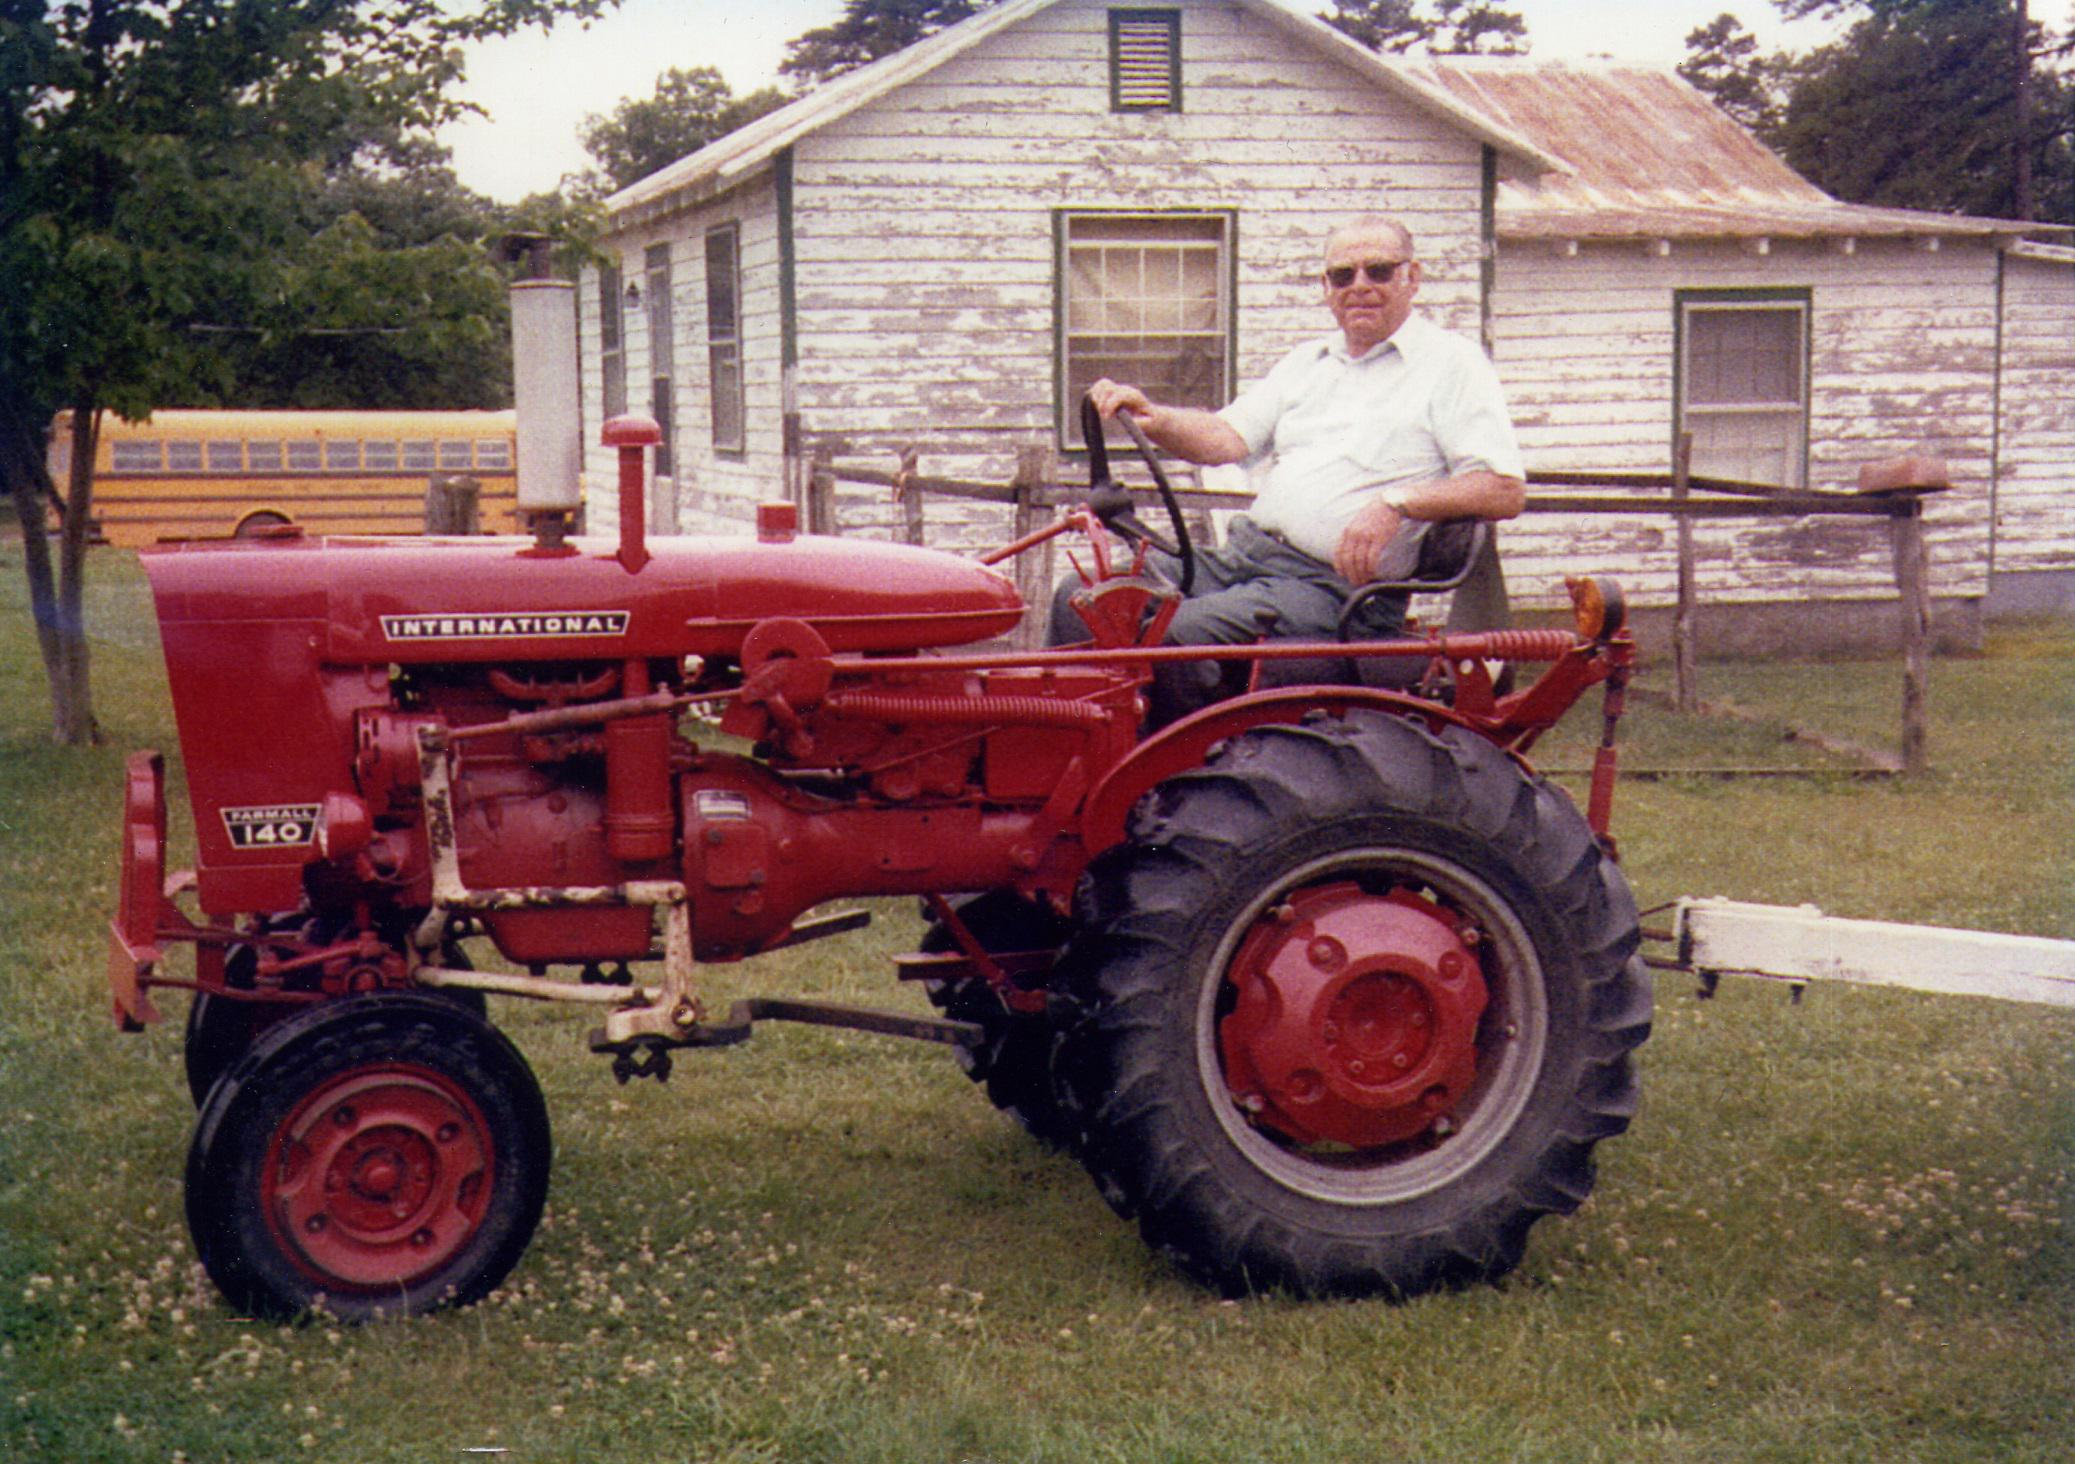 Grandpa Crews on the Tractor